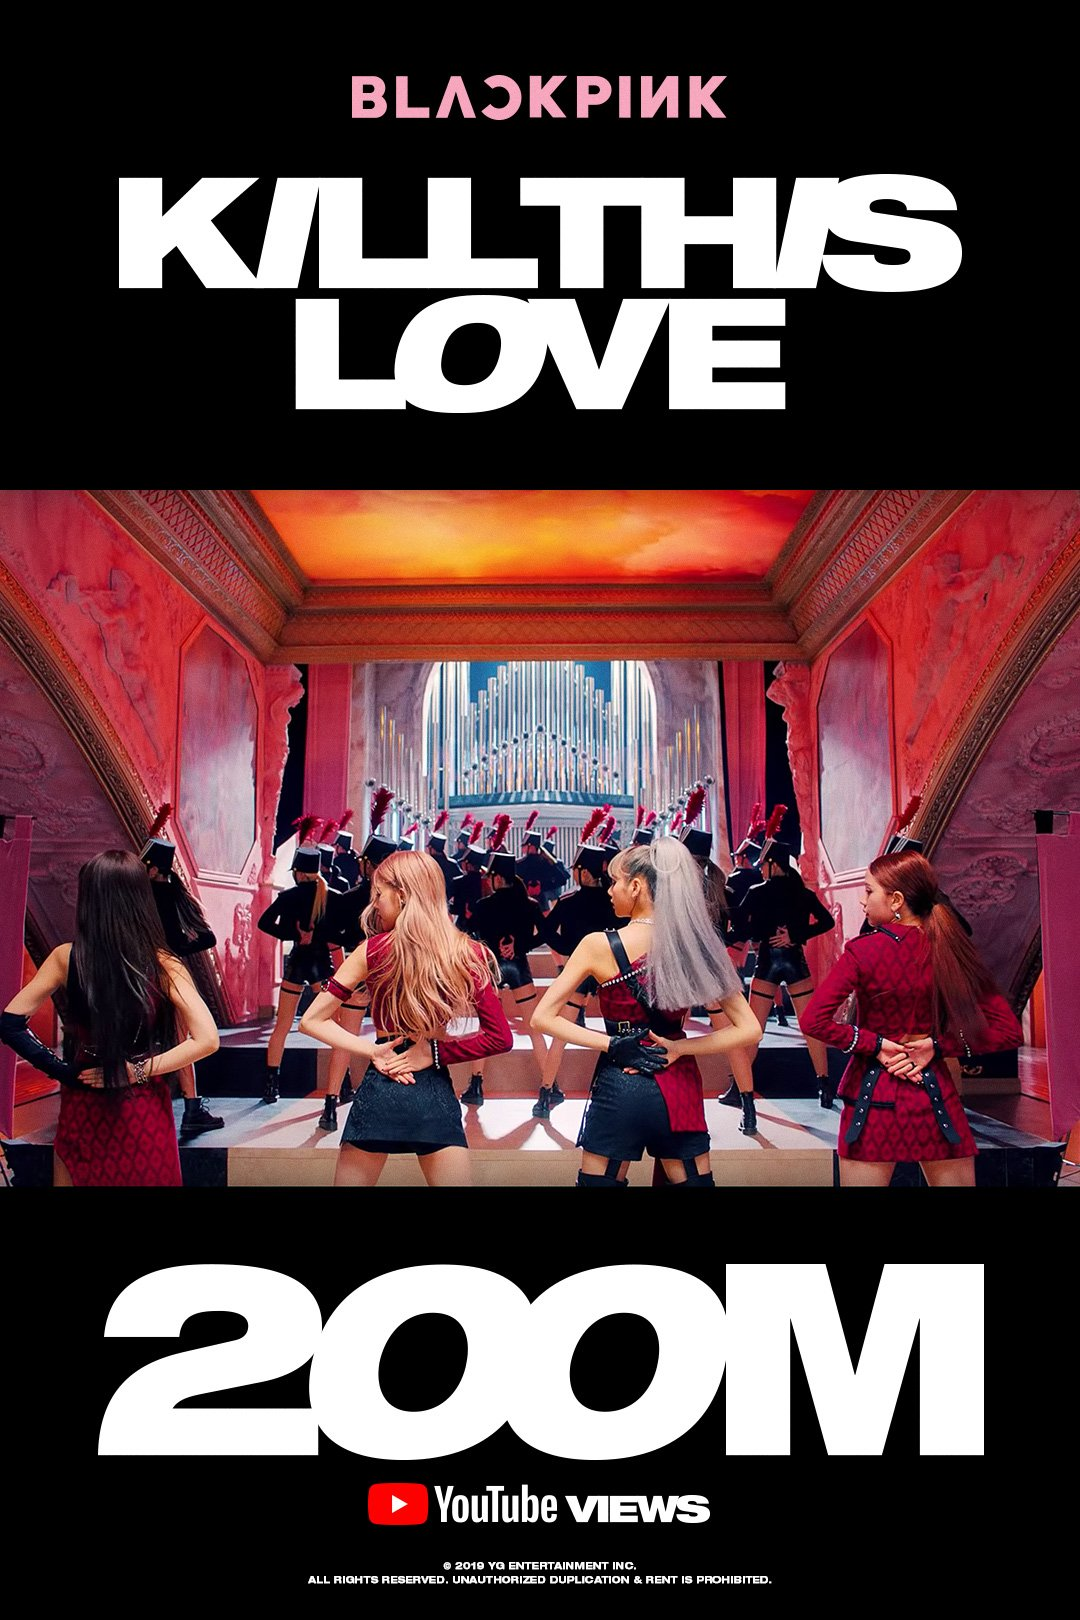 BLACKPINK 'Kill This Love' Becomes The Fastest K-Pop MV to Reach 200